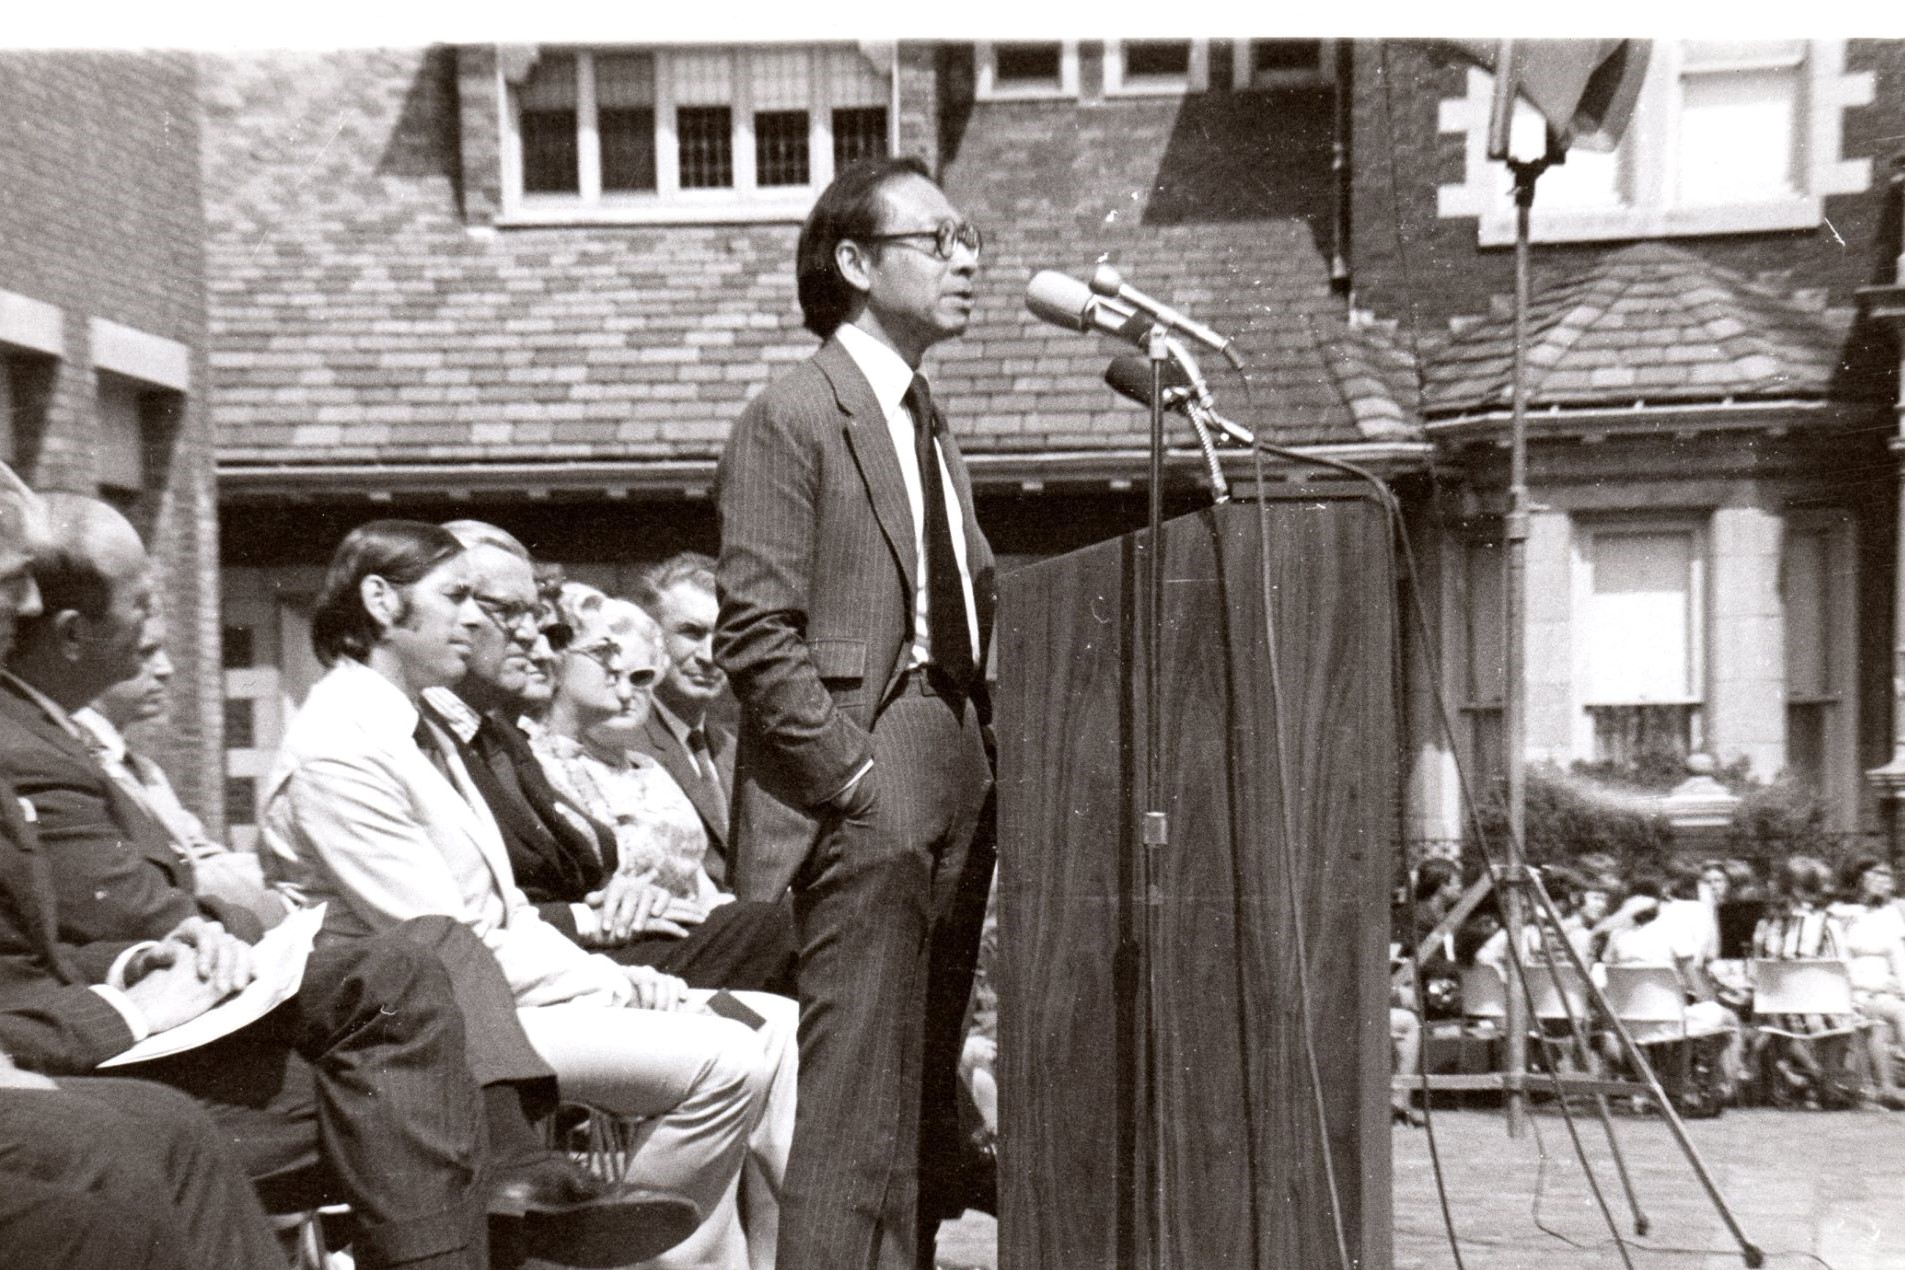 Architect I.M. Pei speaks at the dedication of the Cleo Rogers Memorial Library, which he designed, in May 1971. Columbus, Ind.